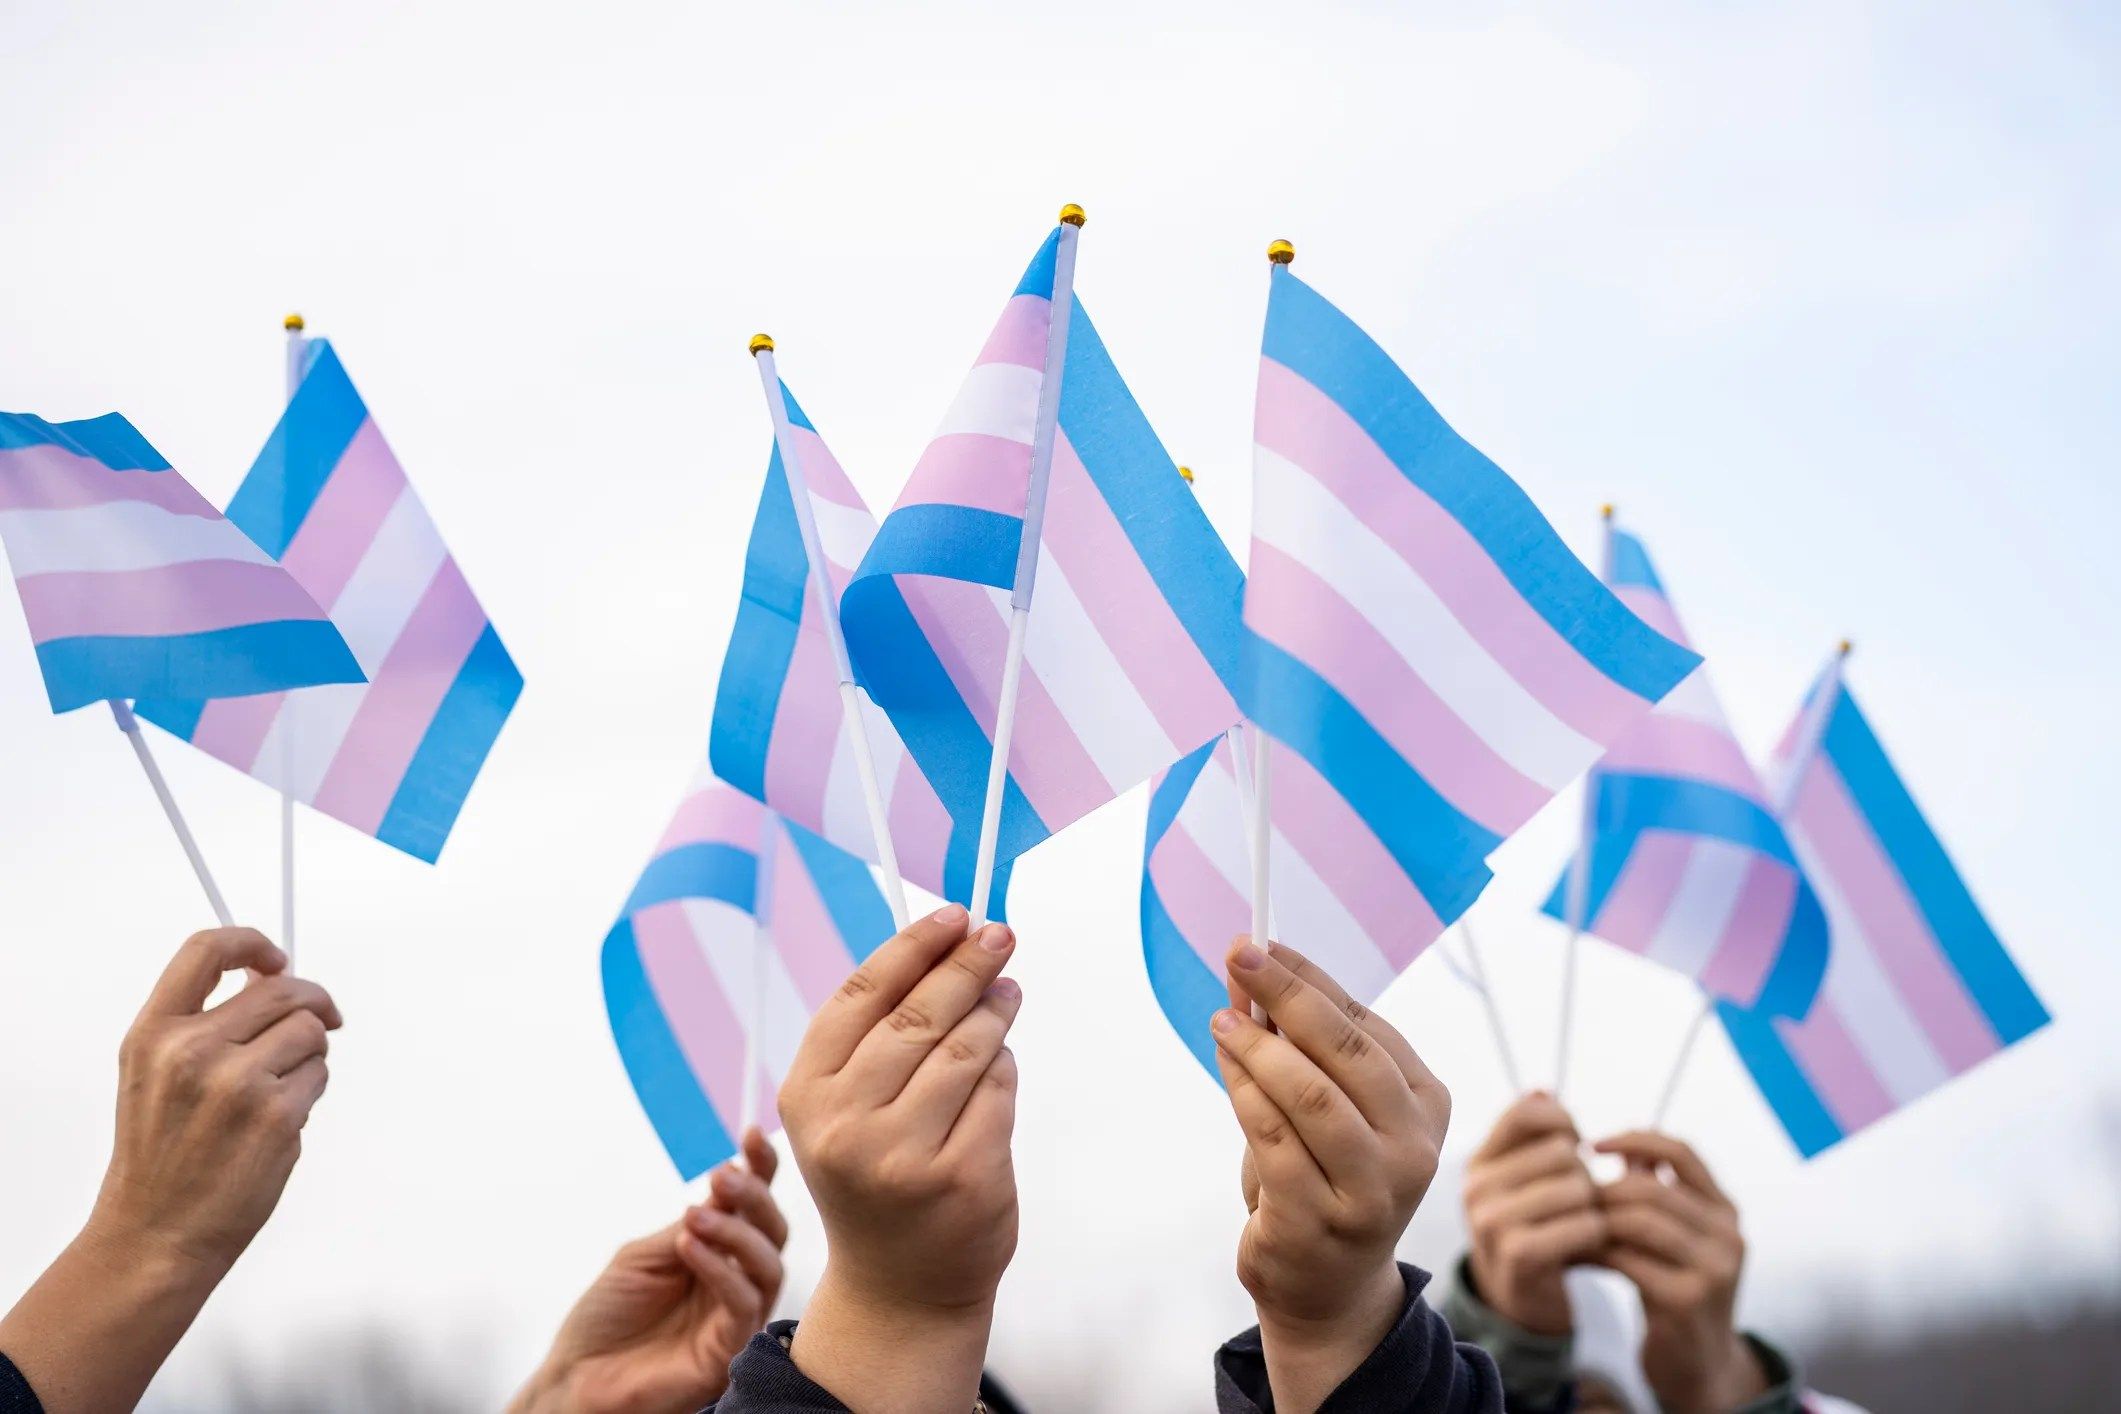 Transgender students are protected at school against discrimination, President Joe Biden's administration said Wednesday. Here, people hold the transgender flag.